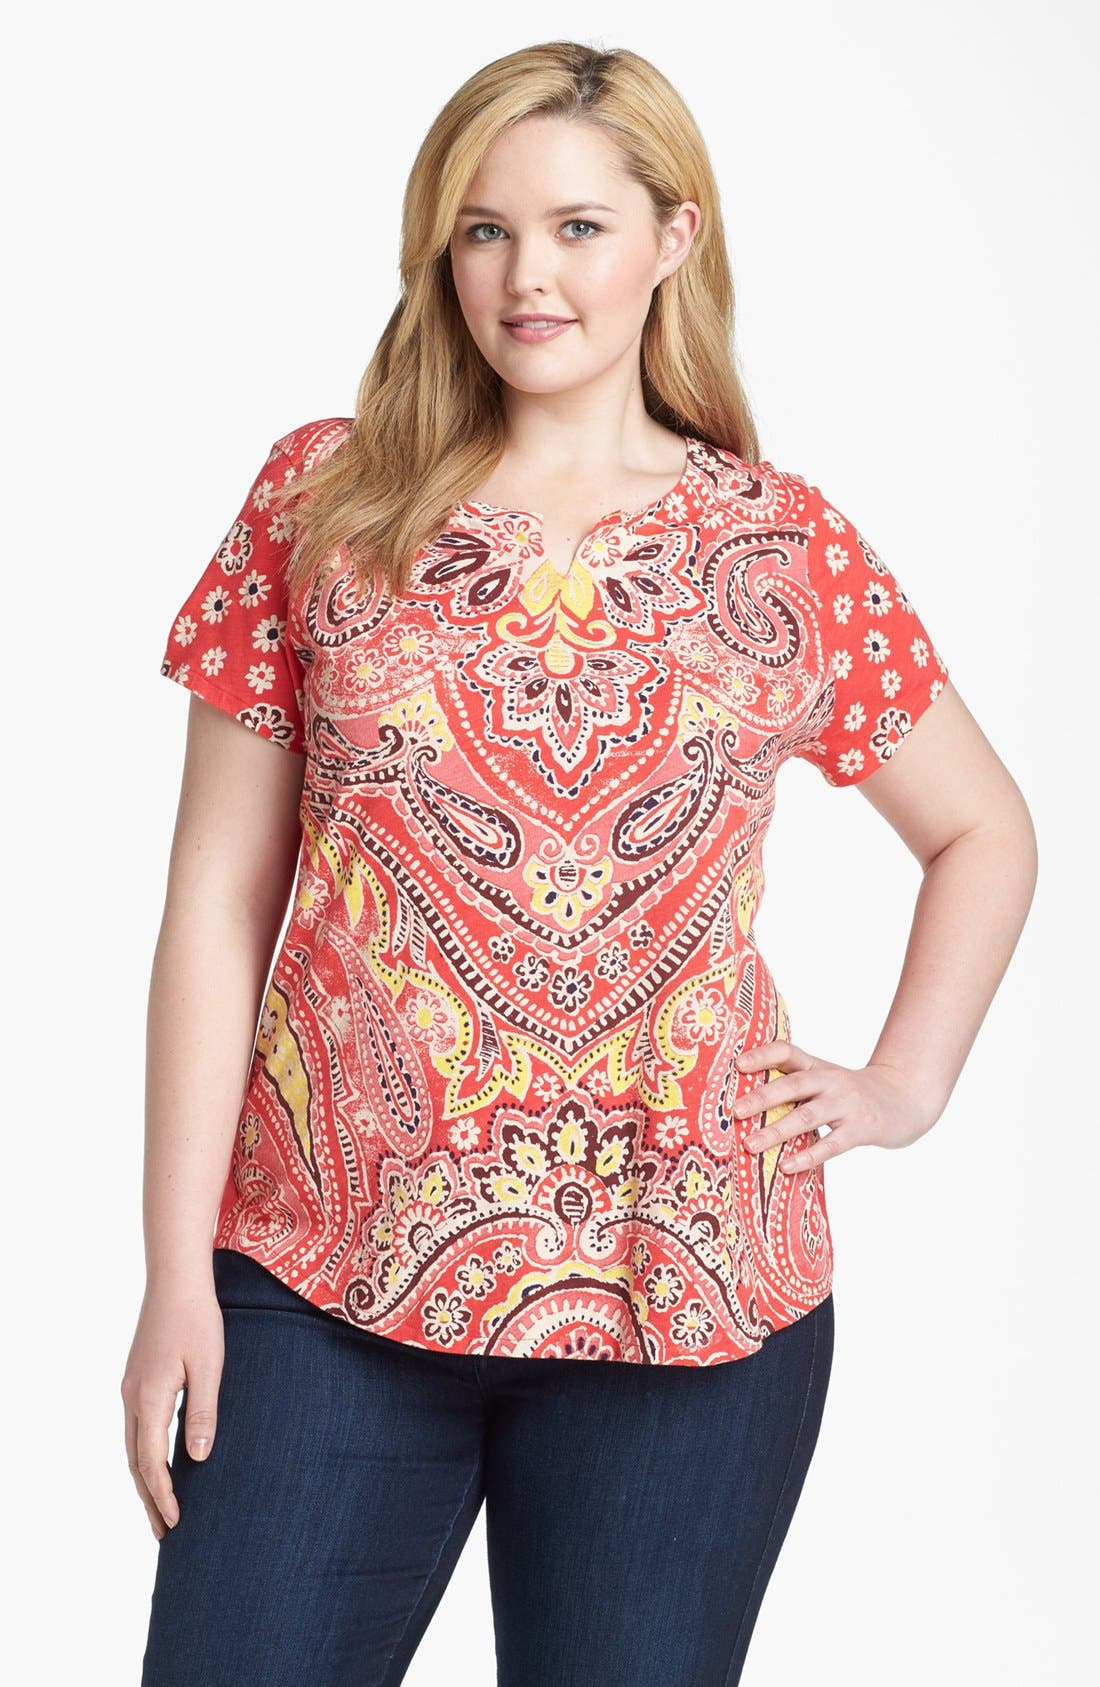 Main Image - Lucky Brand 'Lana' Mixed Print Tee (Plus Size)